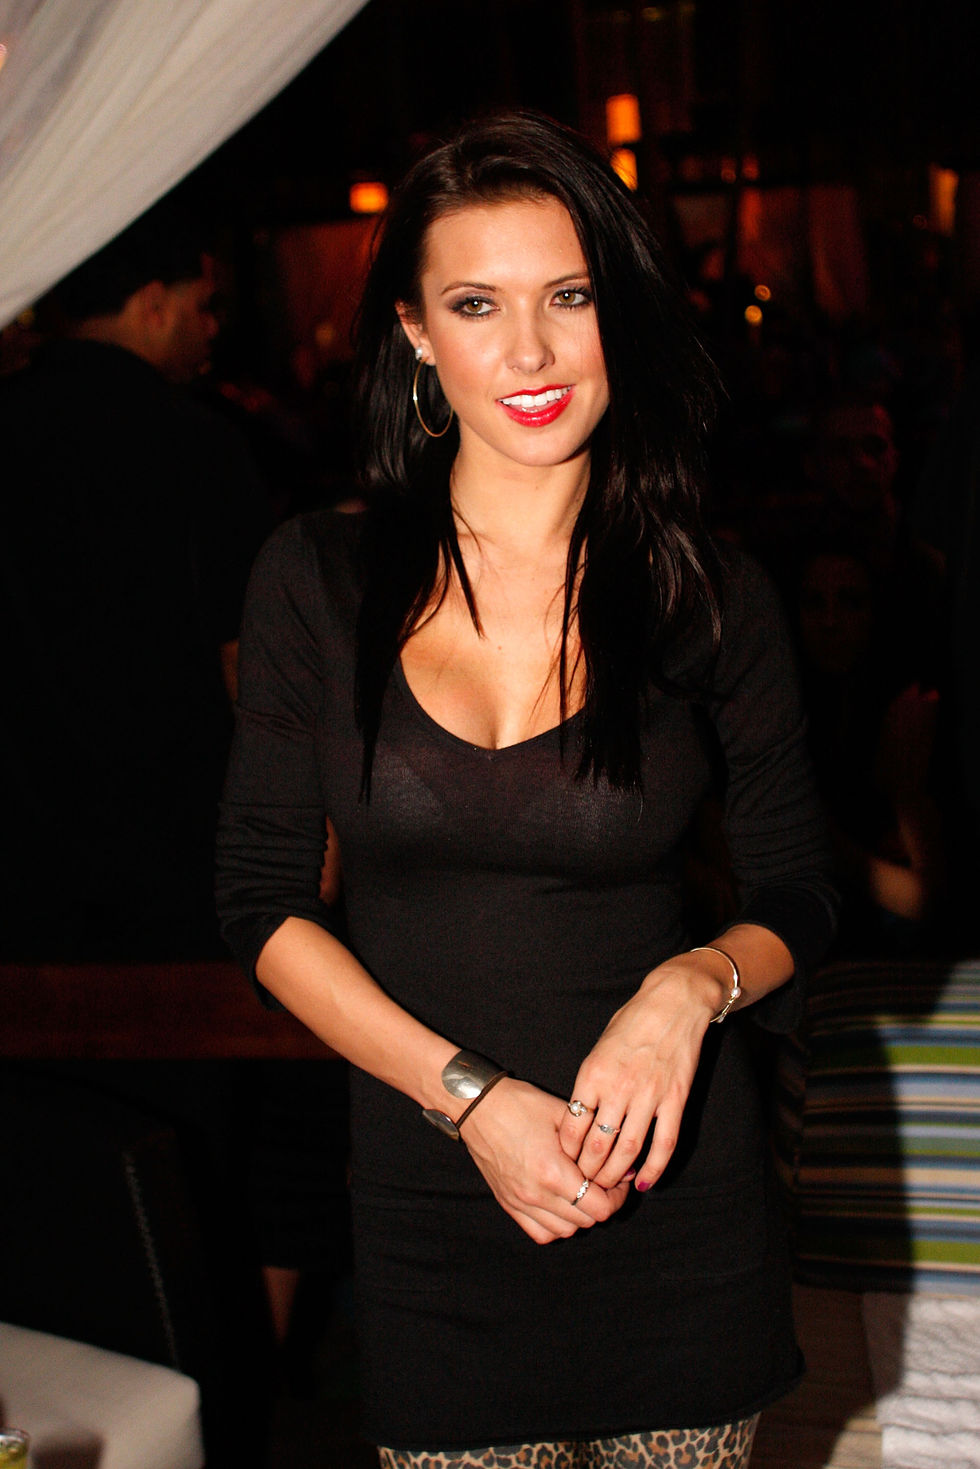 audrina-patridge-at-the-pool-after-dark-at-harrahs-resort-in-atlantic-city-01